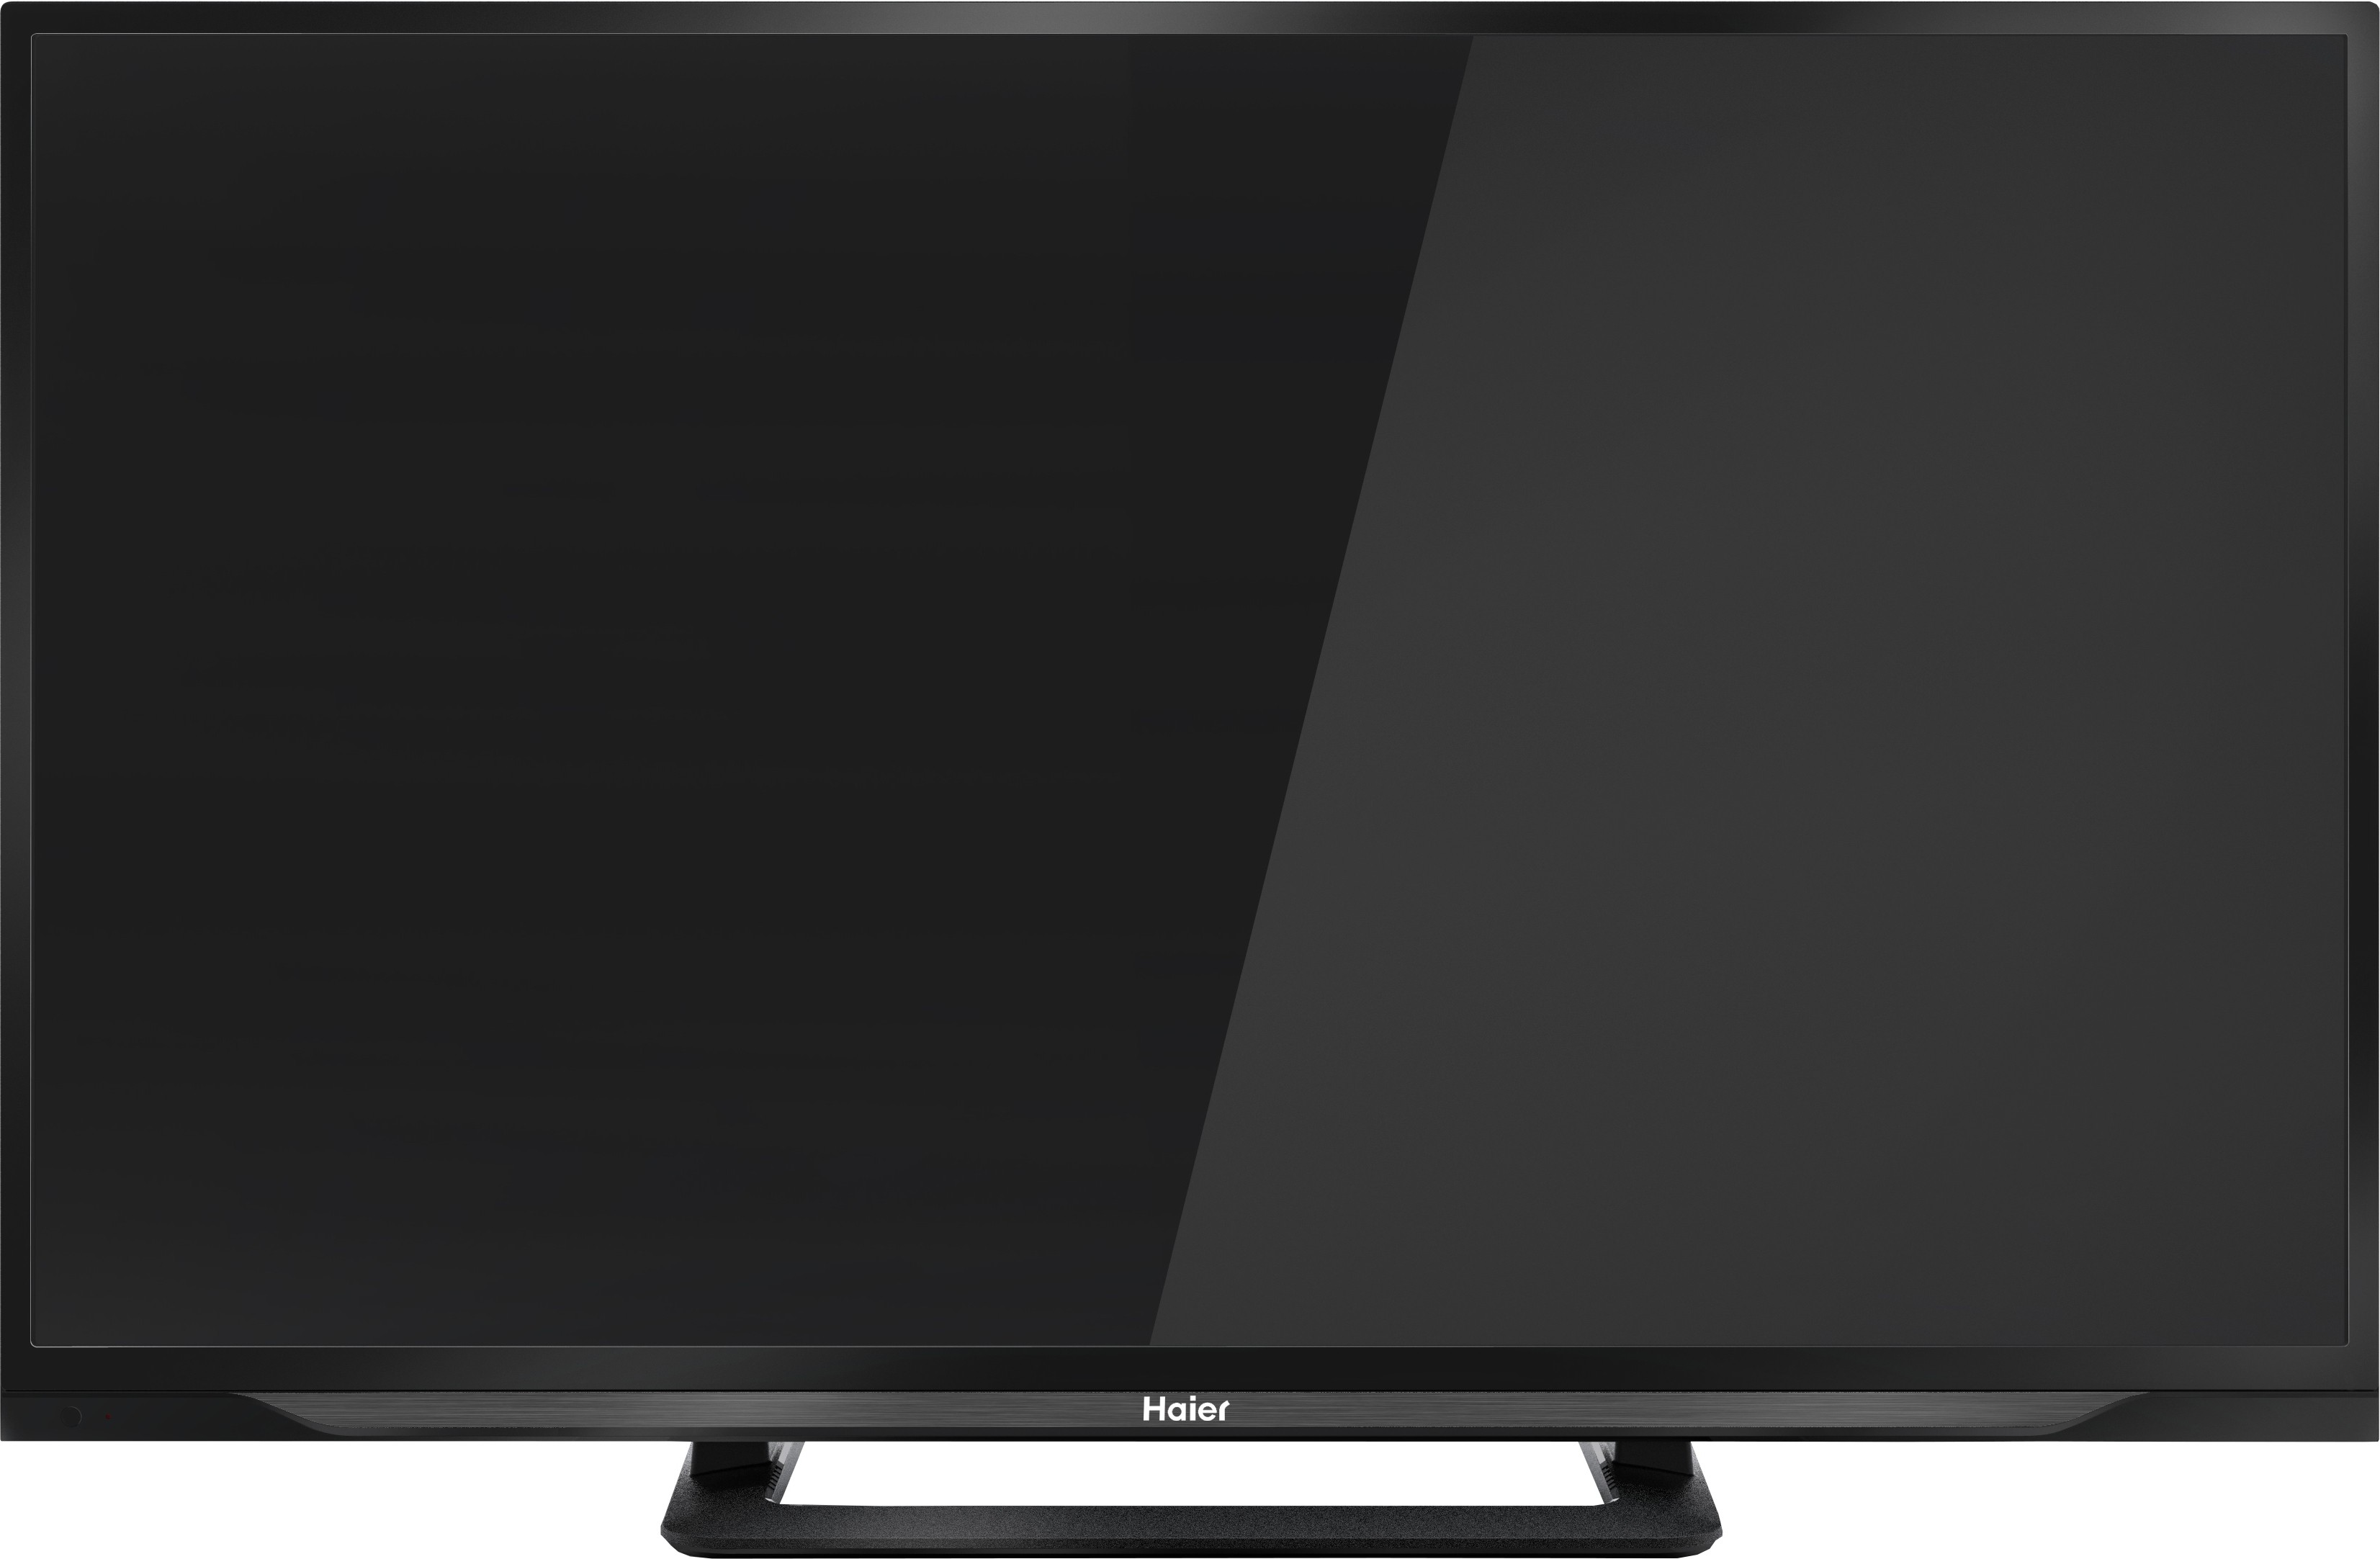 haier le32v600 80 cm 31 5 led tv available at flipkart for. Black Bedroom Furniture Sets. Home Design Ideas